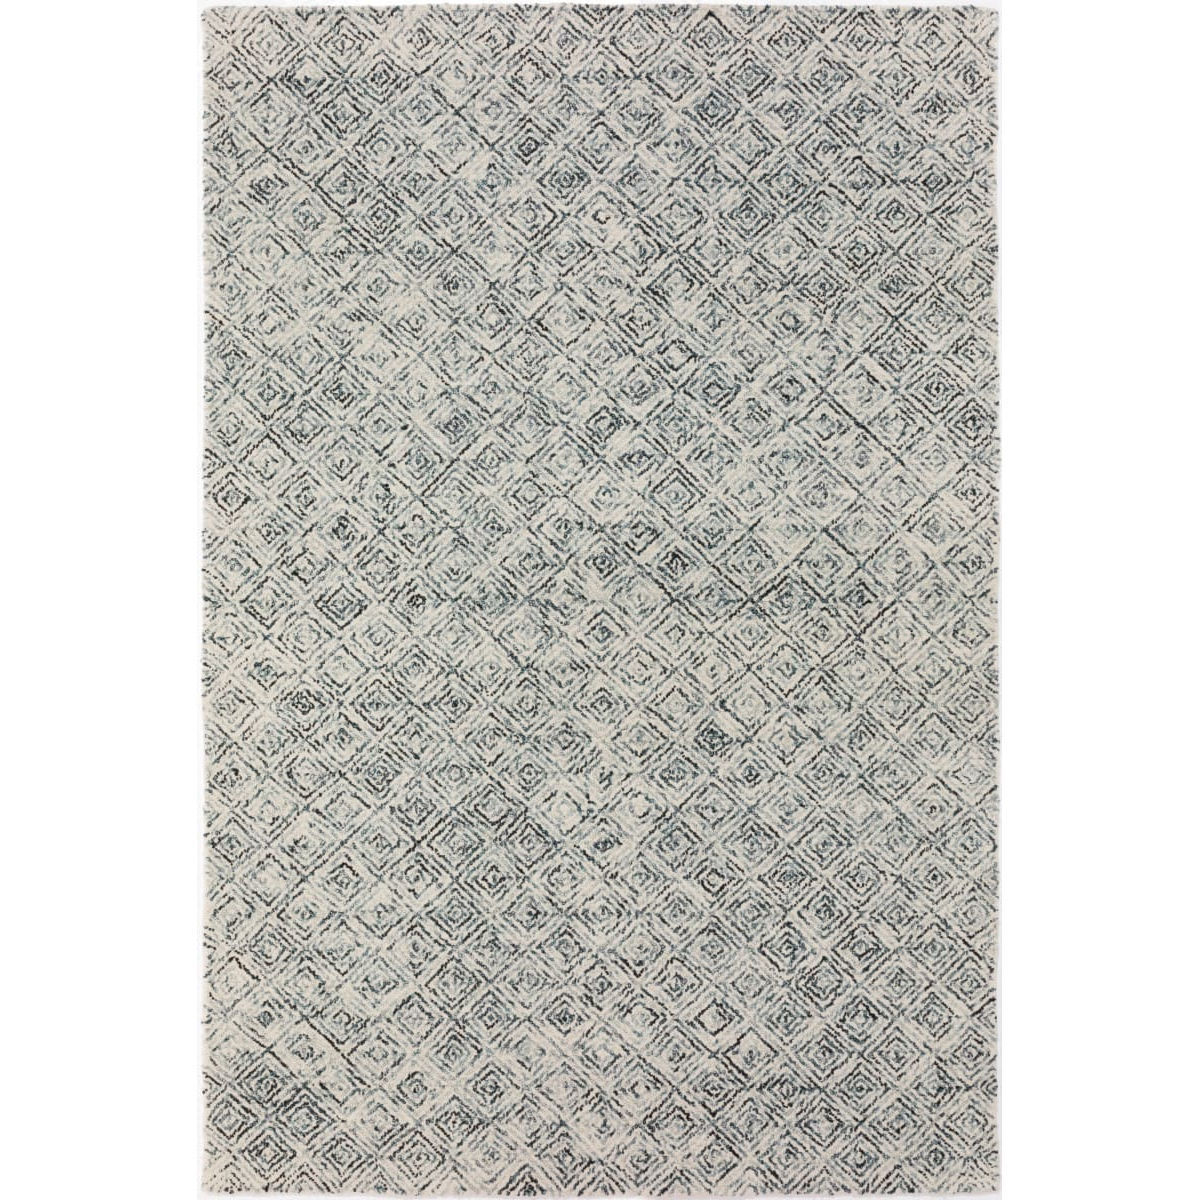 Picture of ZOE 1 CHARCOAL 8X10 AREA RUG